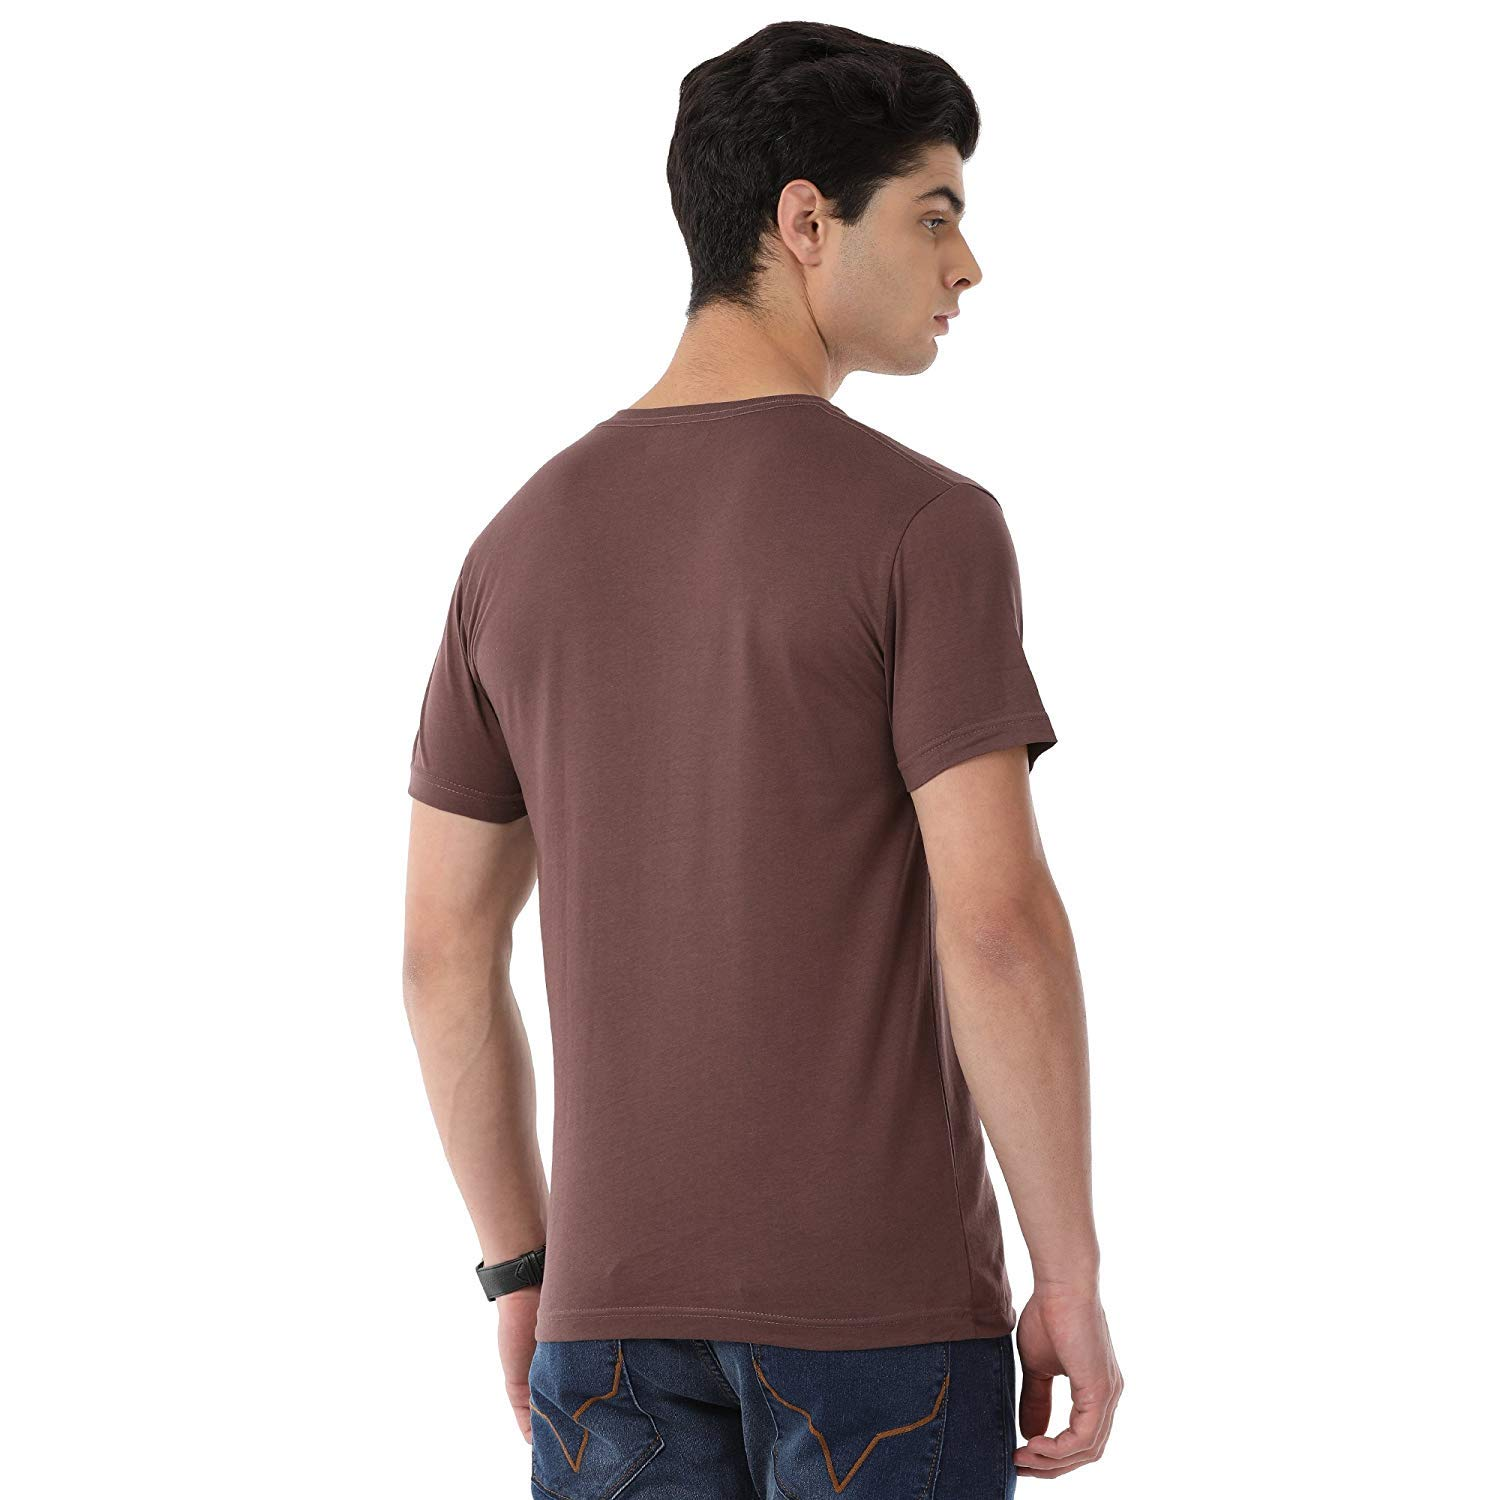 b6746e66af97 Classic Polo Half Sleeves 100% Cotton V-Neck T Shirt for Men  Amazon.in   Clothing   Accessories